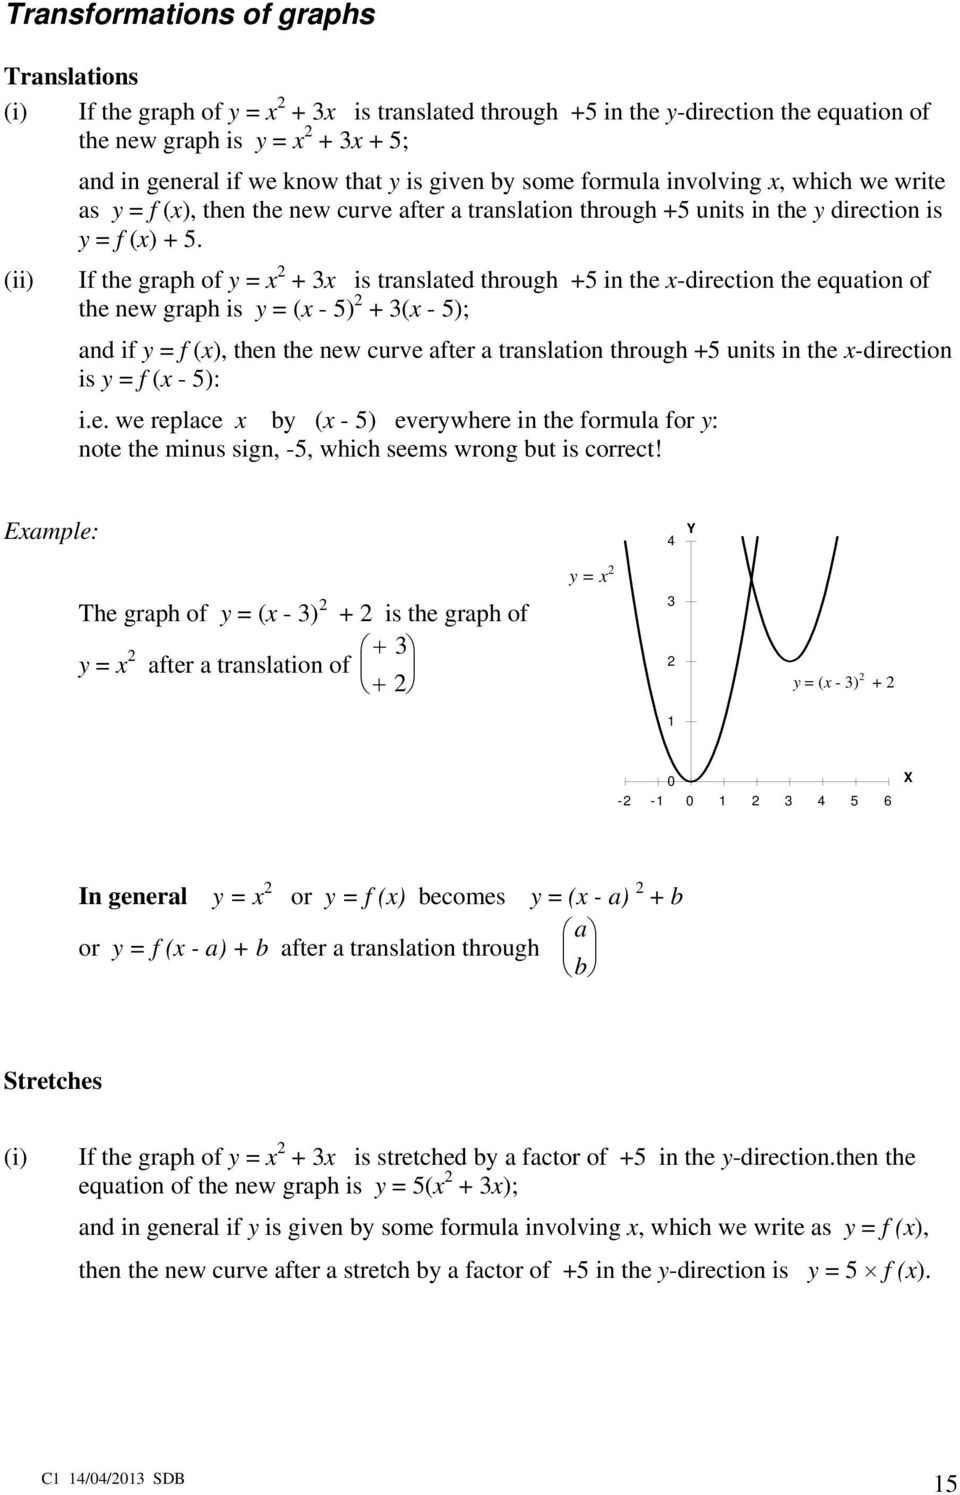 (ii) If the graph of y = + is translated through + in the -direction the equation of the new graph is y = ( - ) + ( - ); and if y = f (), then the new curve after a translation through + units in the